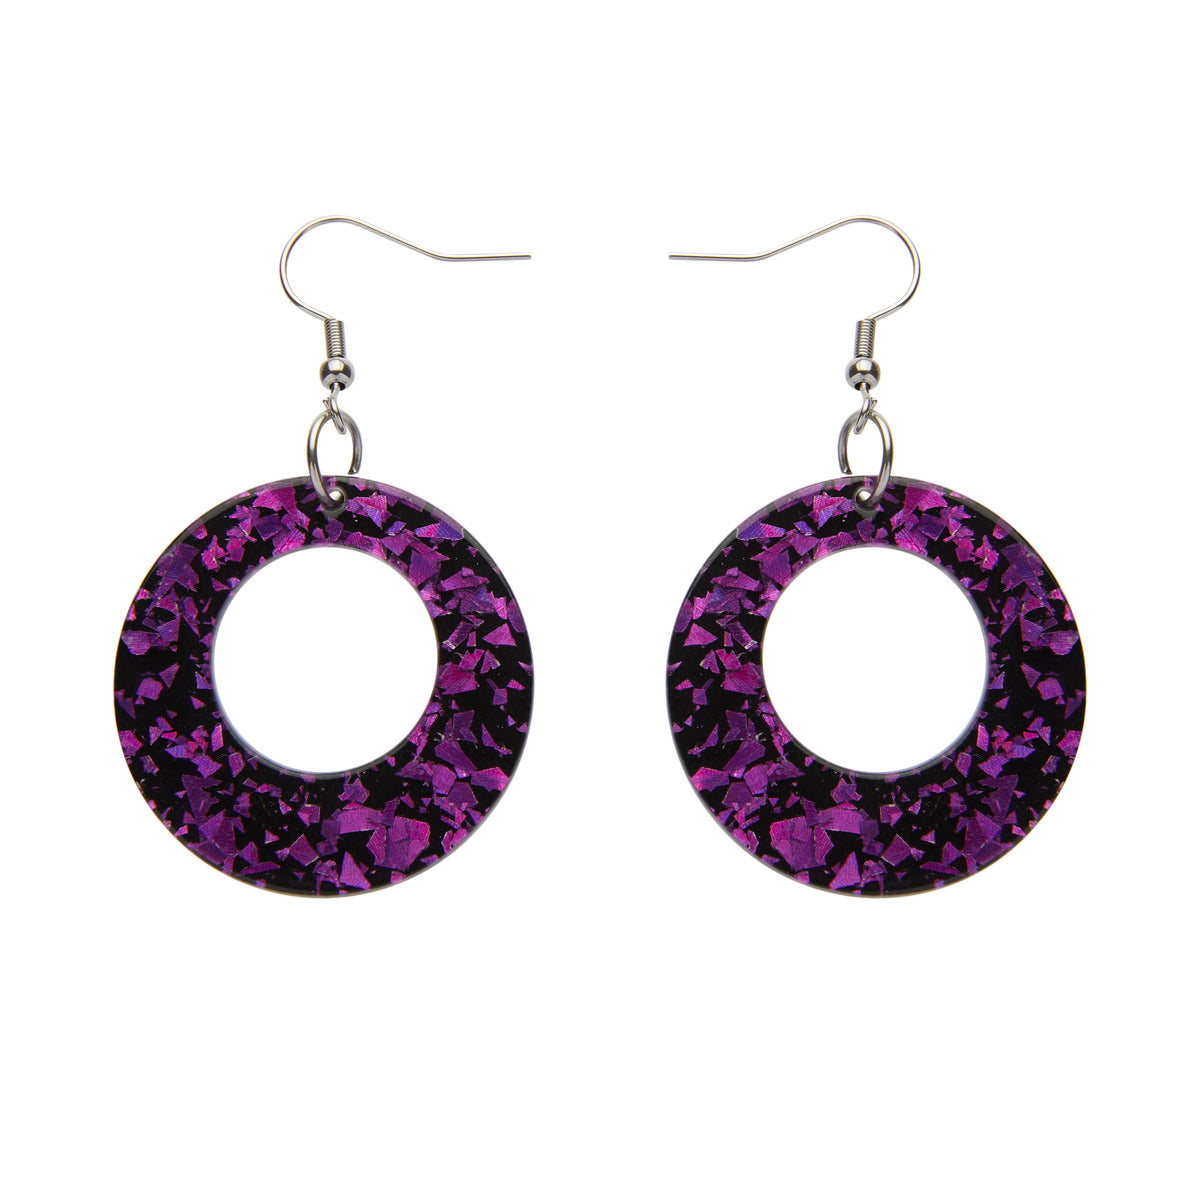 Circle Chunky Fuchsia Glitter Earrings by Erstwilder